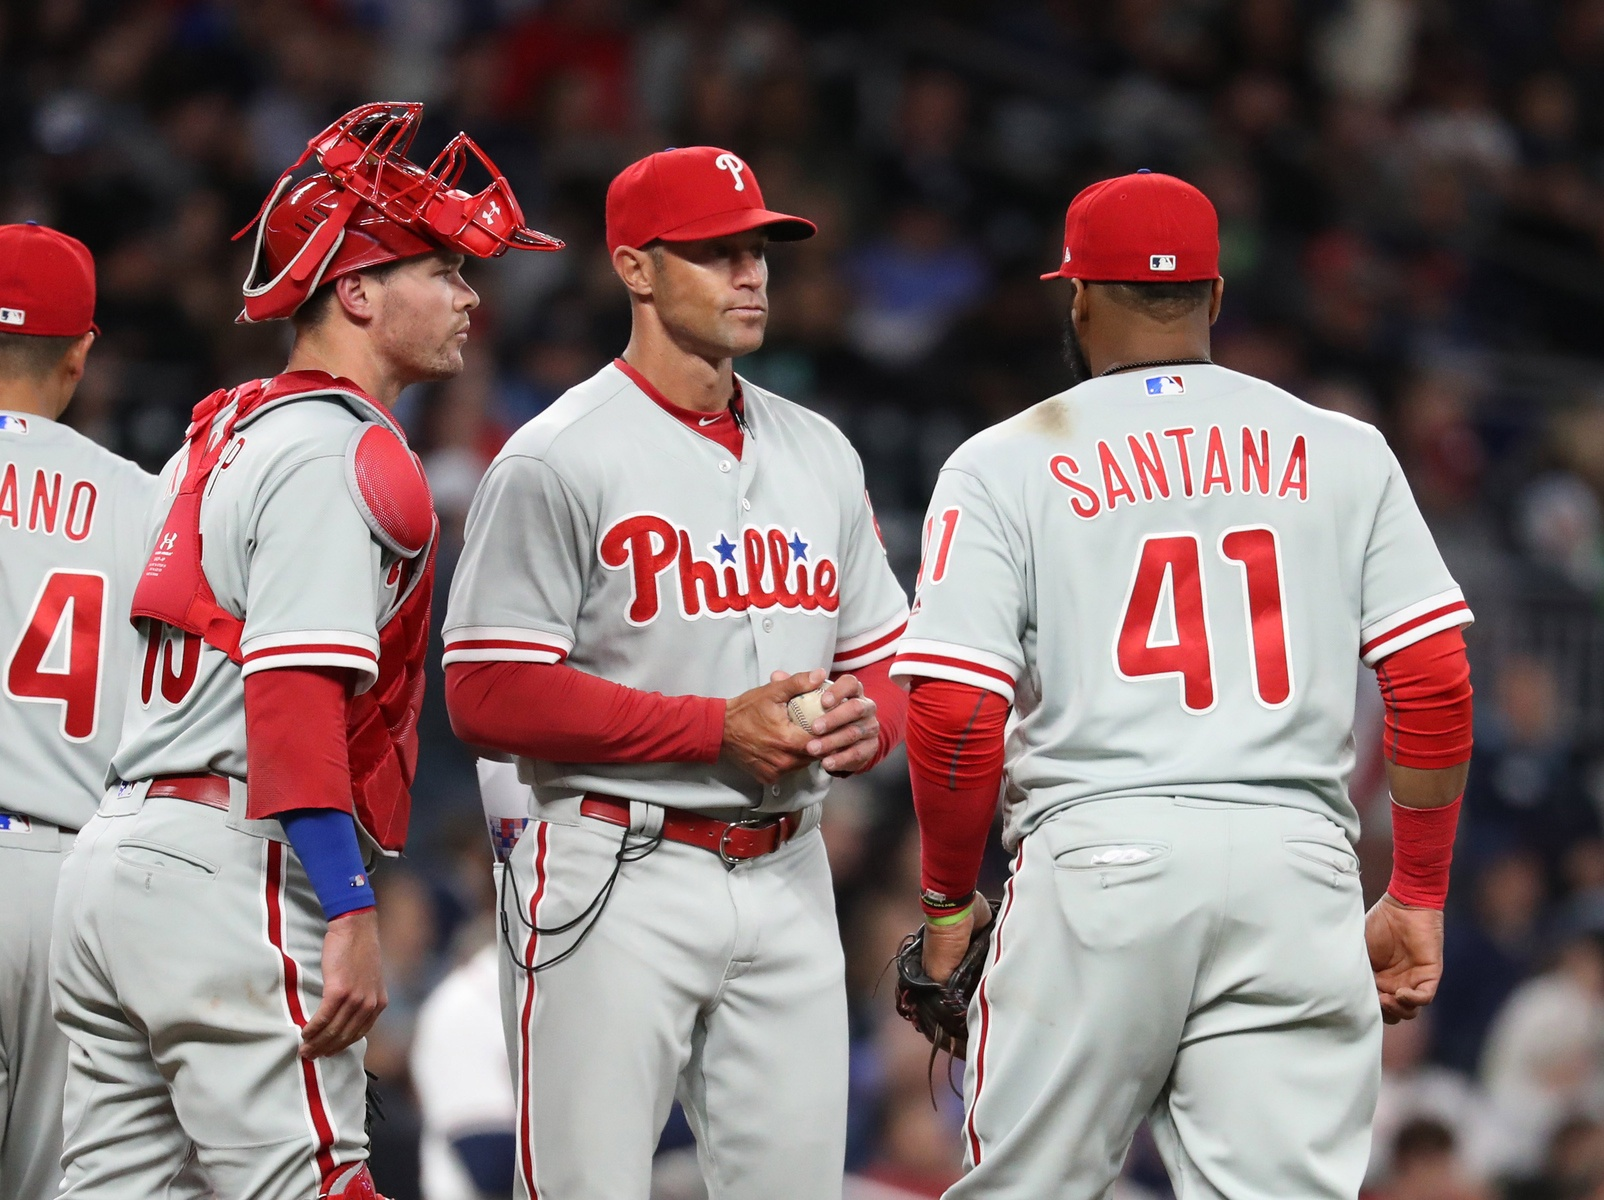 Gabe Kapler standing by his early questionable managing decisions